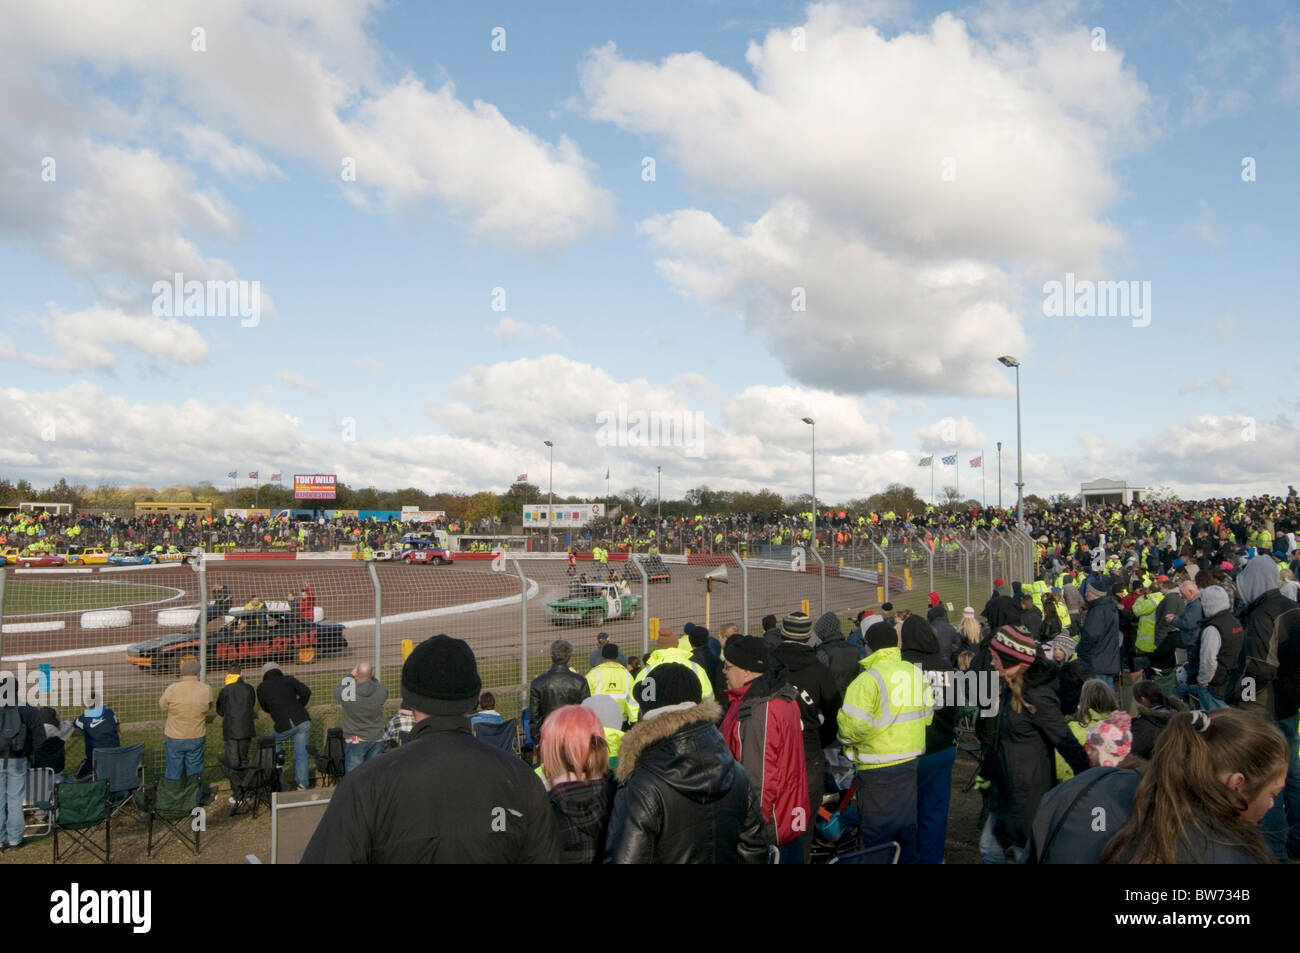 arena essex stock car track speedway circuit motor racing banger racing crowd crows spectator spectators sport motorsport - Stock Image